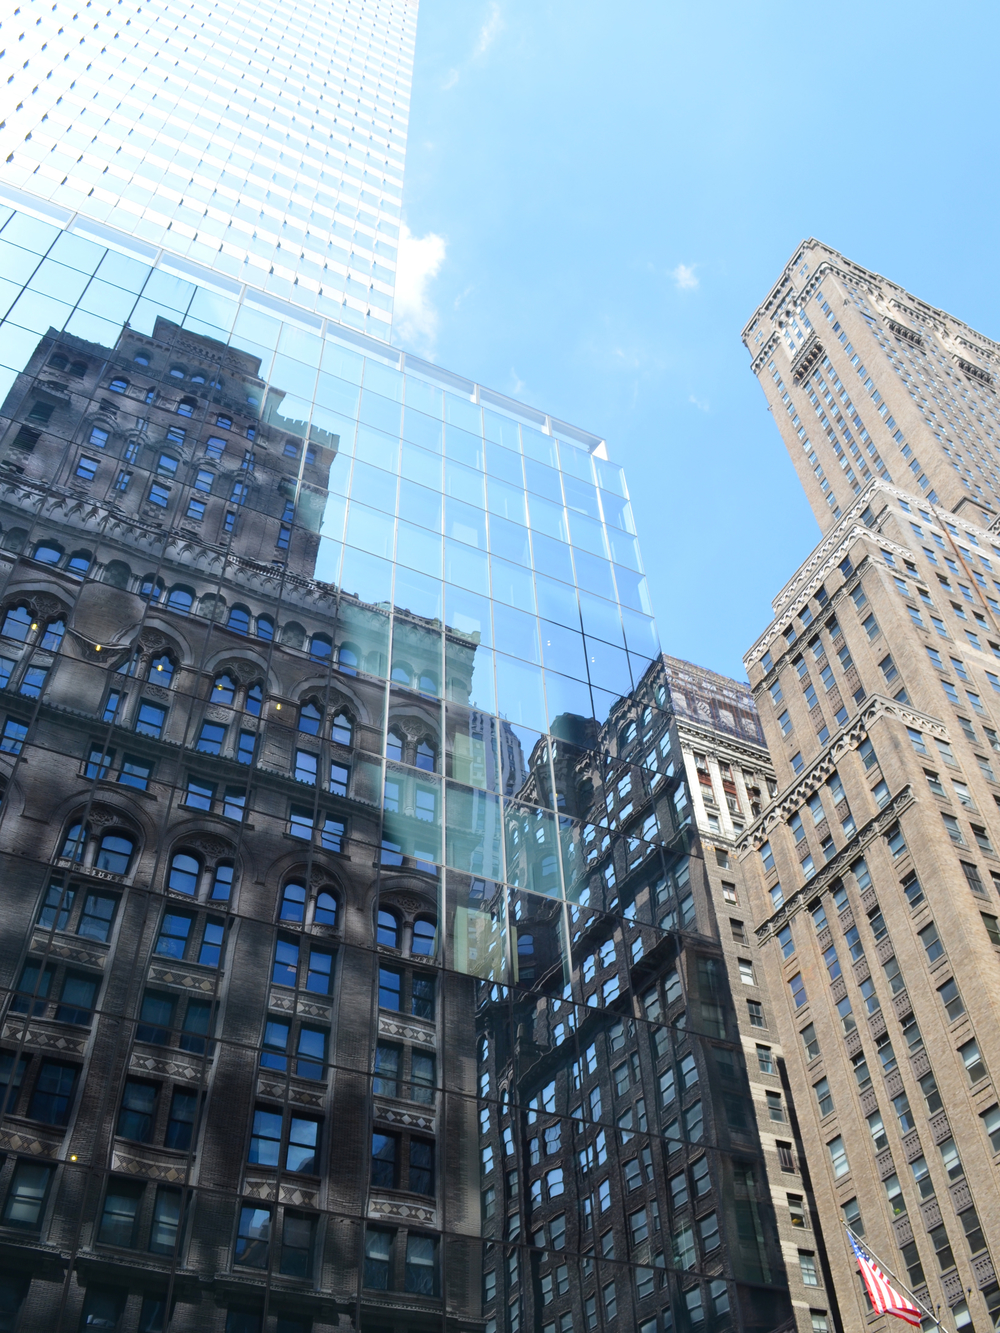 0247_NYdouble_building.jpg